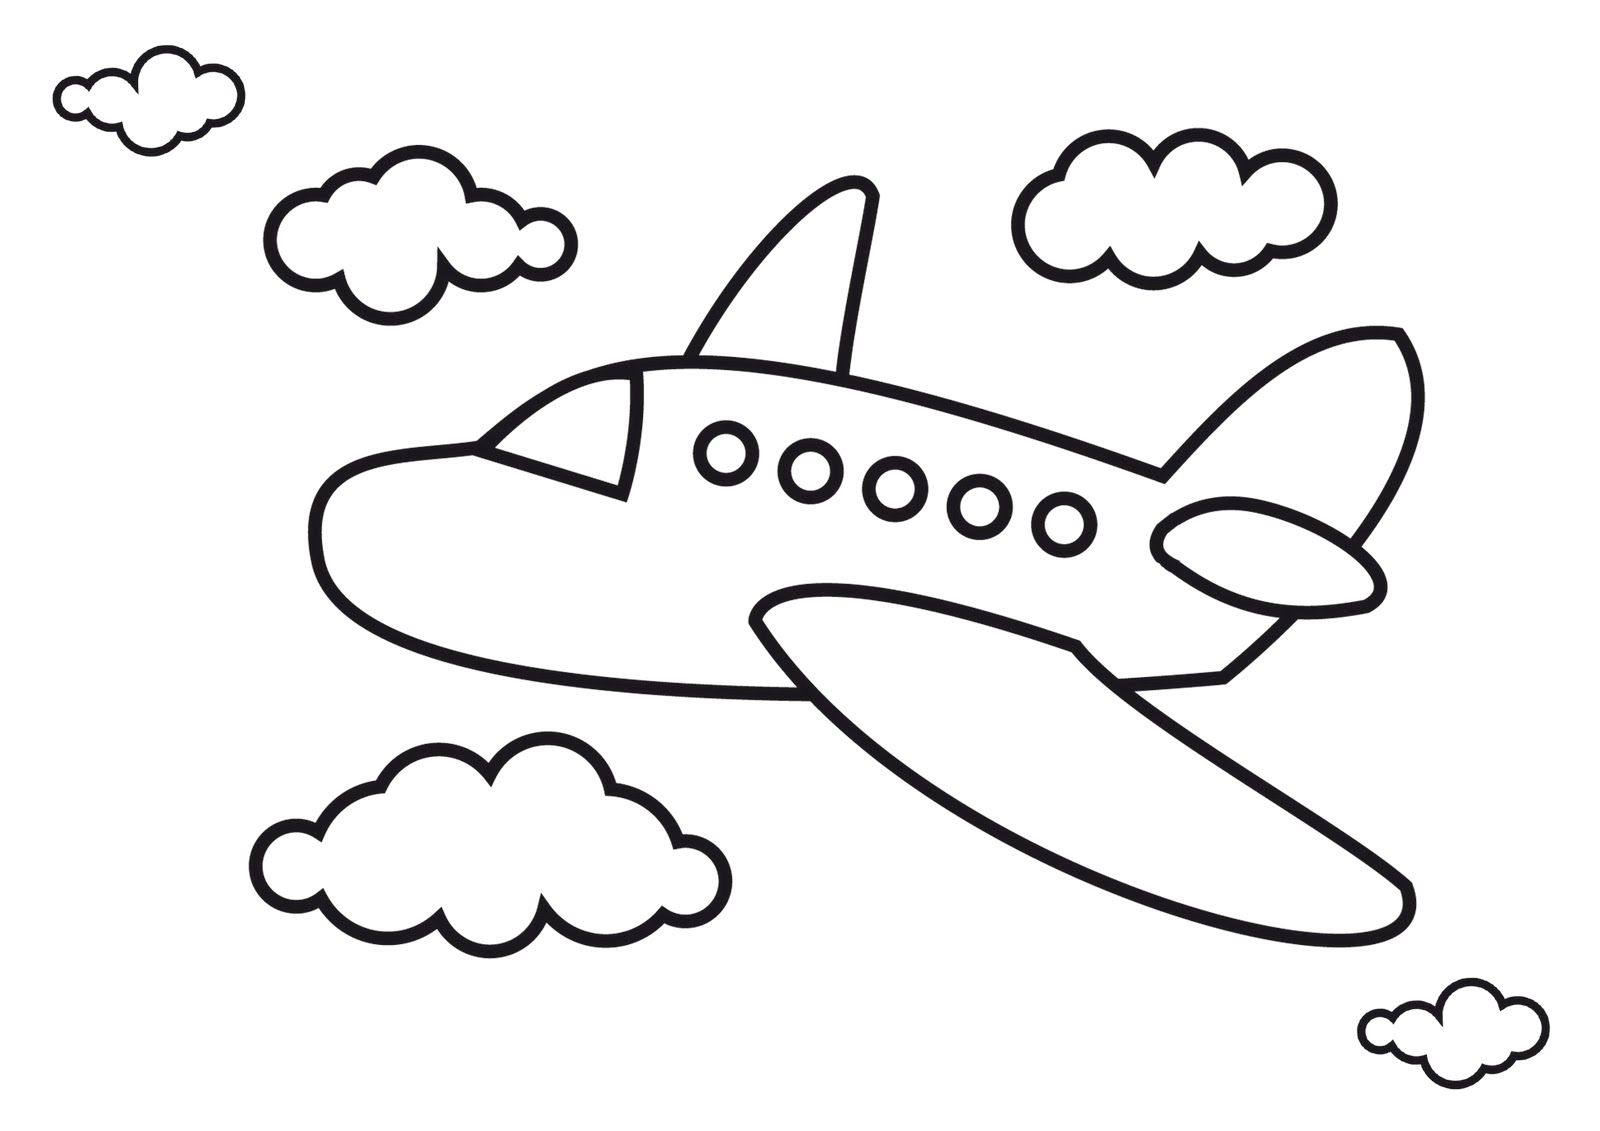 airplane coloring pages airplanes pictures for kids viewing gallery for easy airplanes wallpaper - Pictures For Children To Colour In Disney